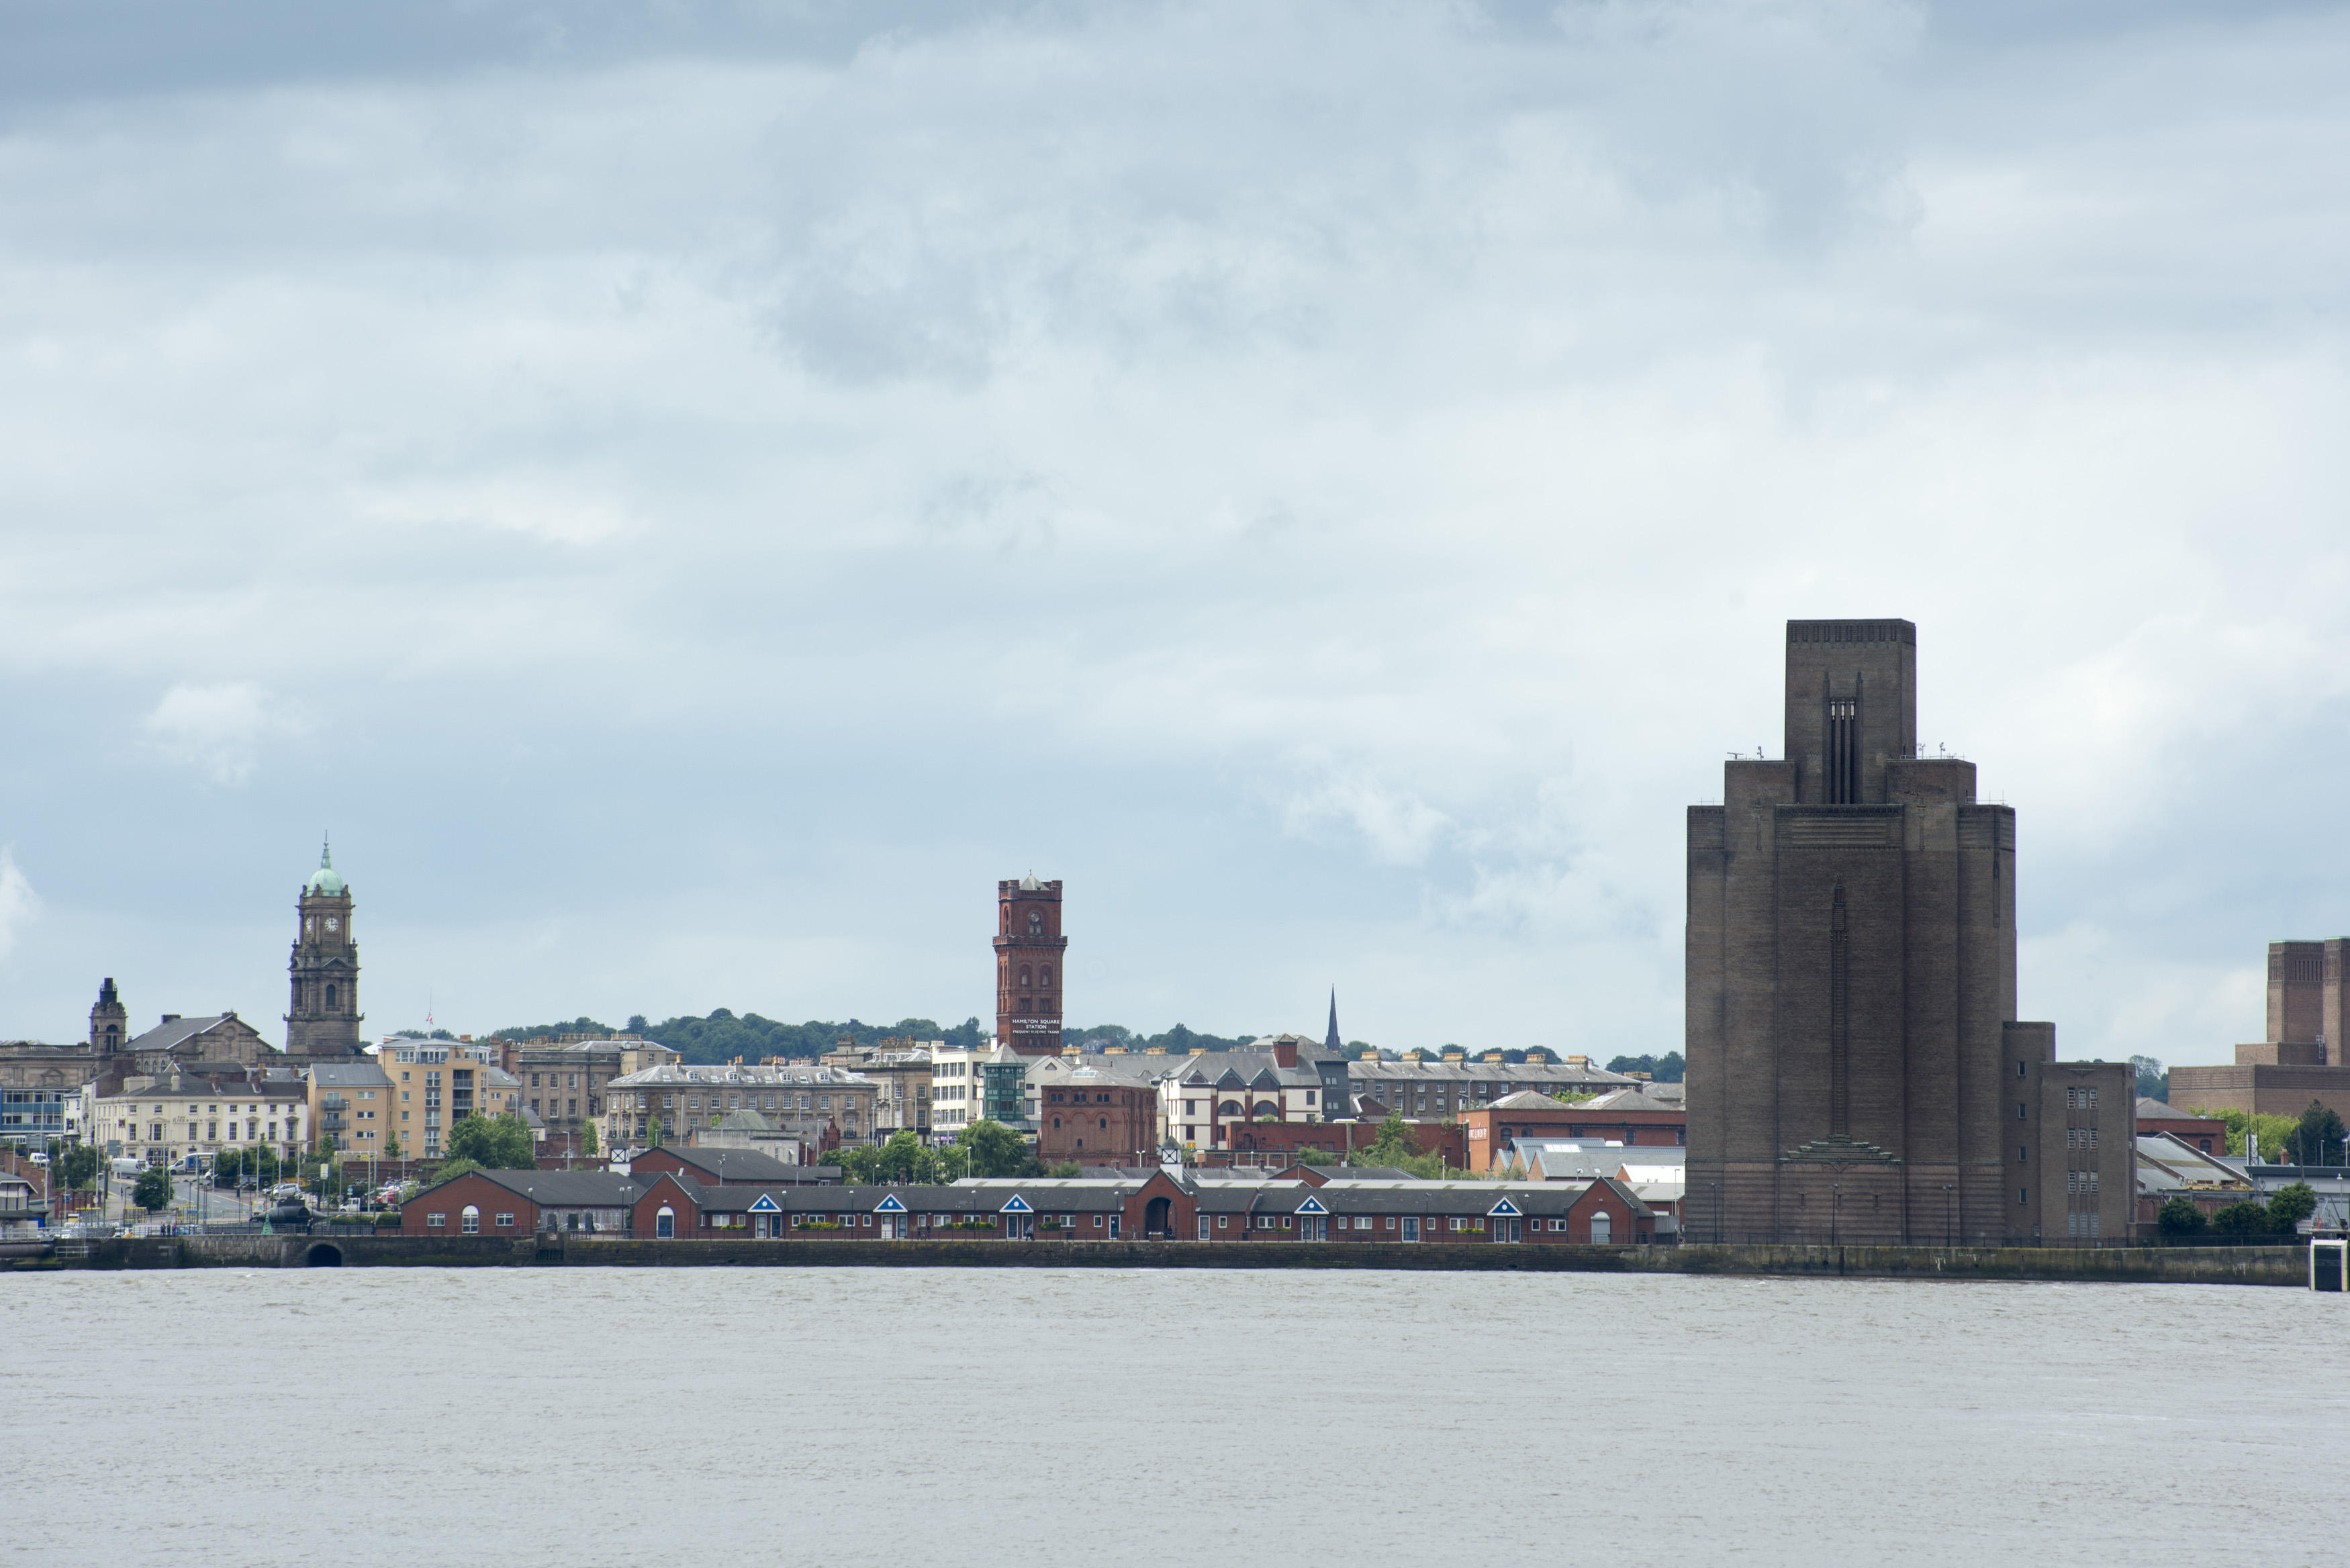 Skyline view of the Birkenhead Mersey Waterfront buildings under cloudy skies with copy space